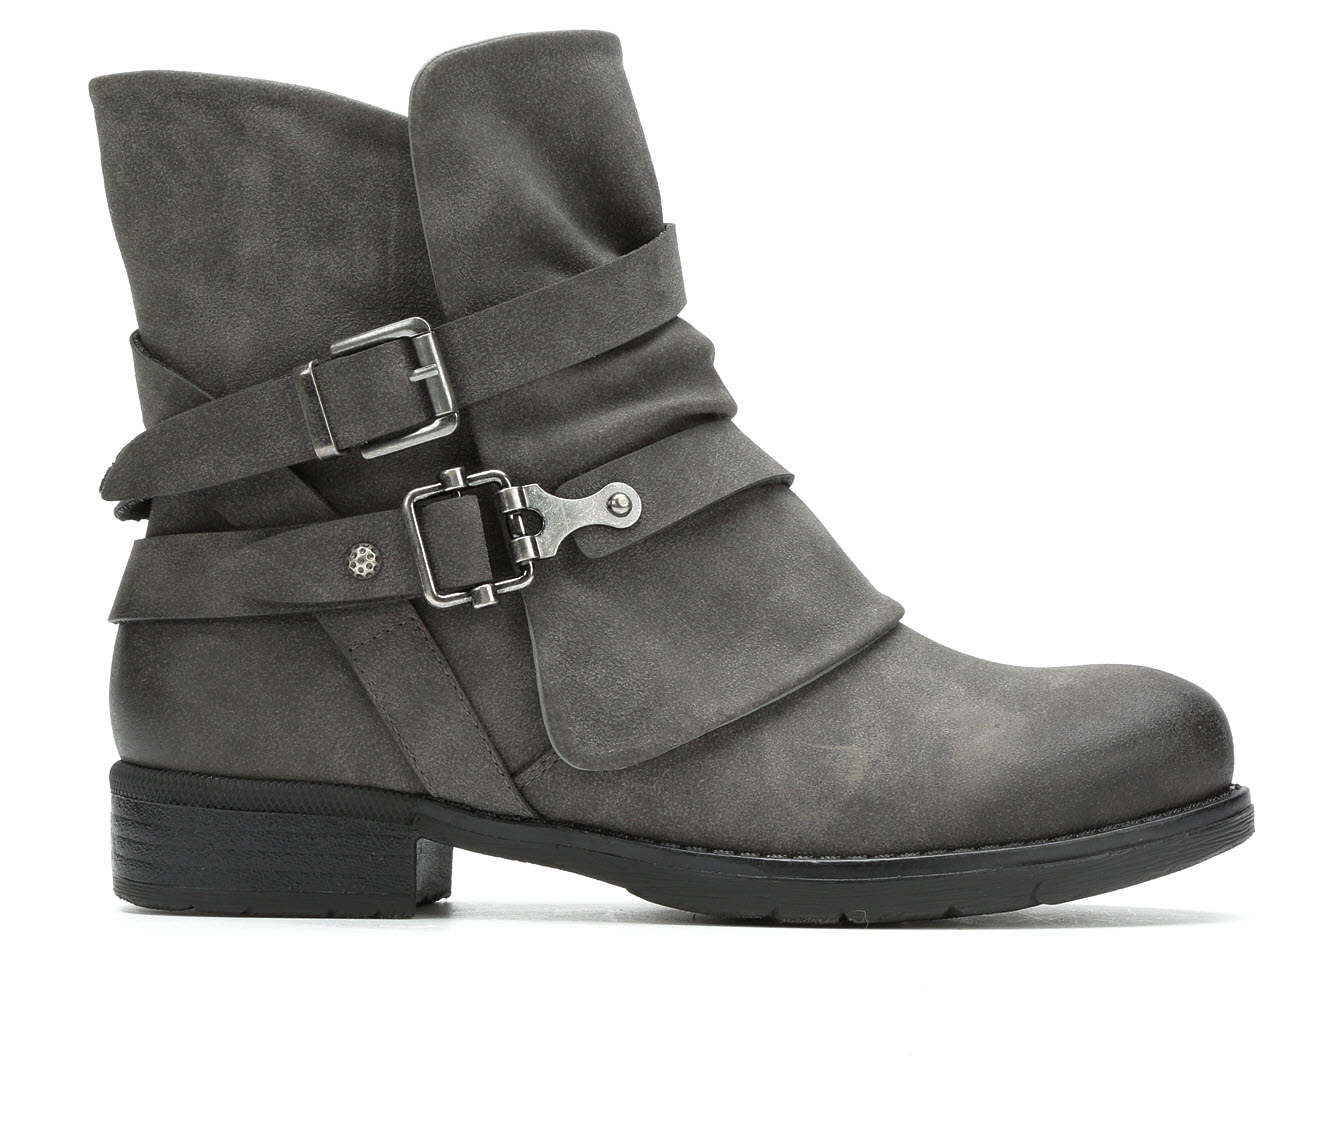 Jellypop Decades Women's Boot (Gray Faux Leather)